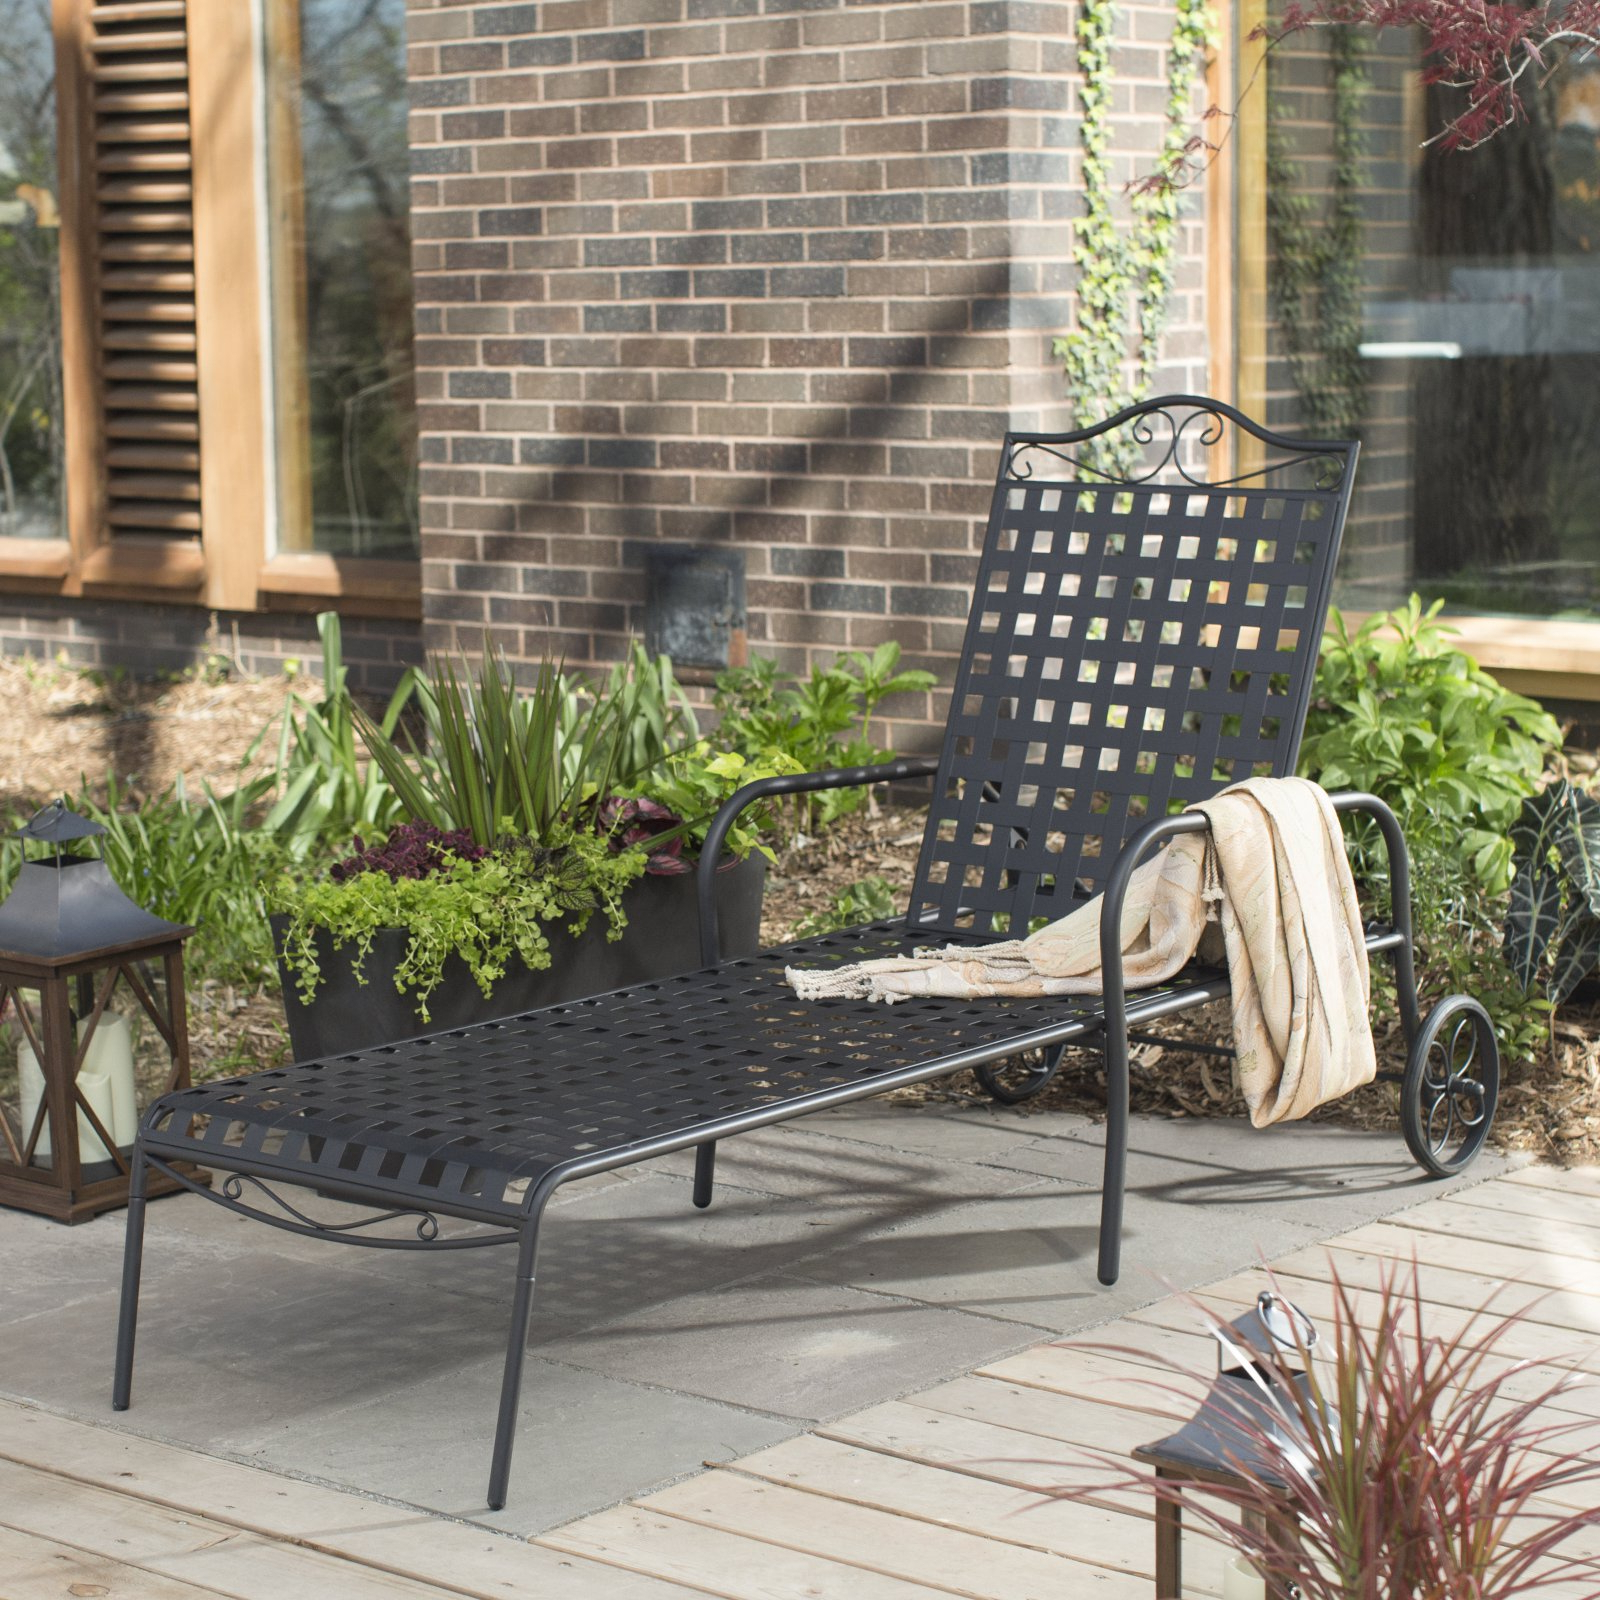 Most Recent Belham Living Capri Wrought Iron Multi Position Single Outdoor Chaise  Lounge – Walmart Inside Outdoor Multi Position Chaise Lounges (View 9 of 25)